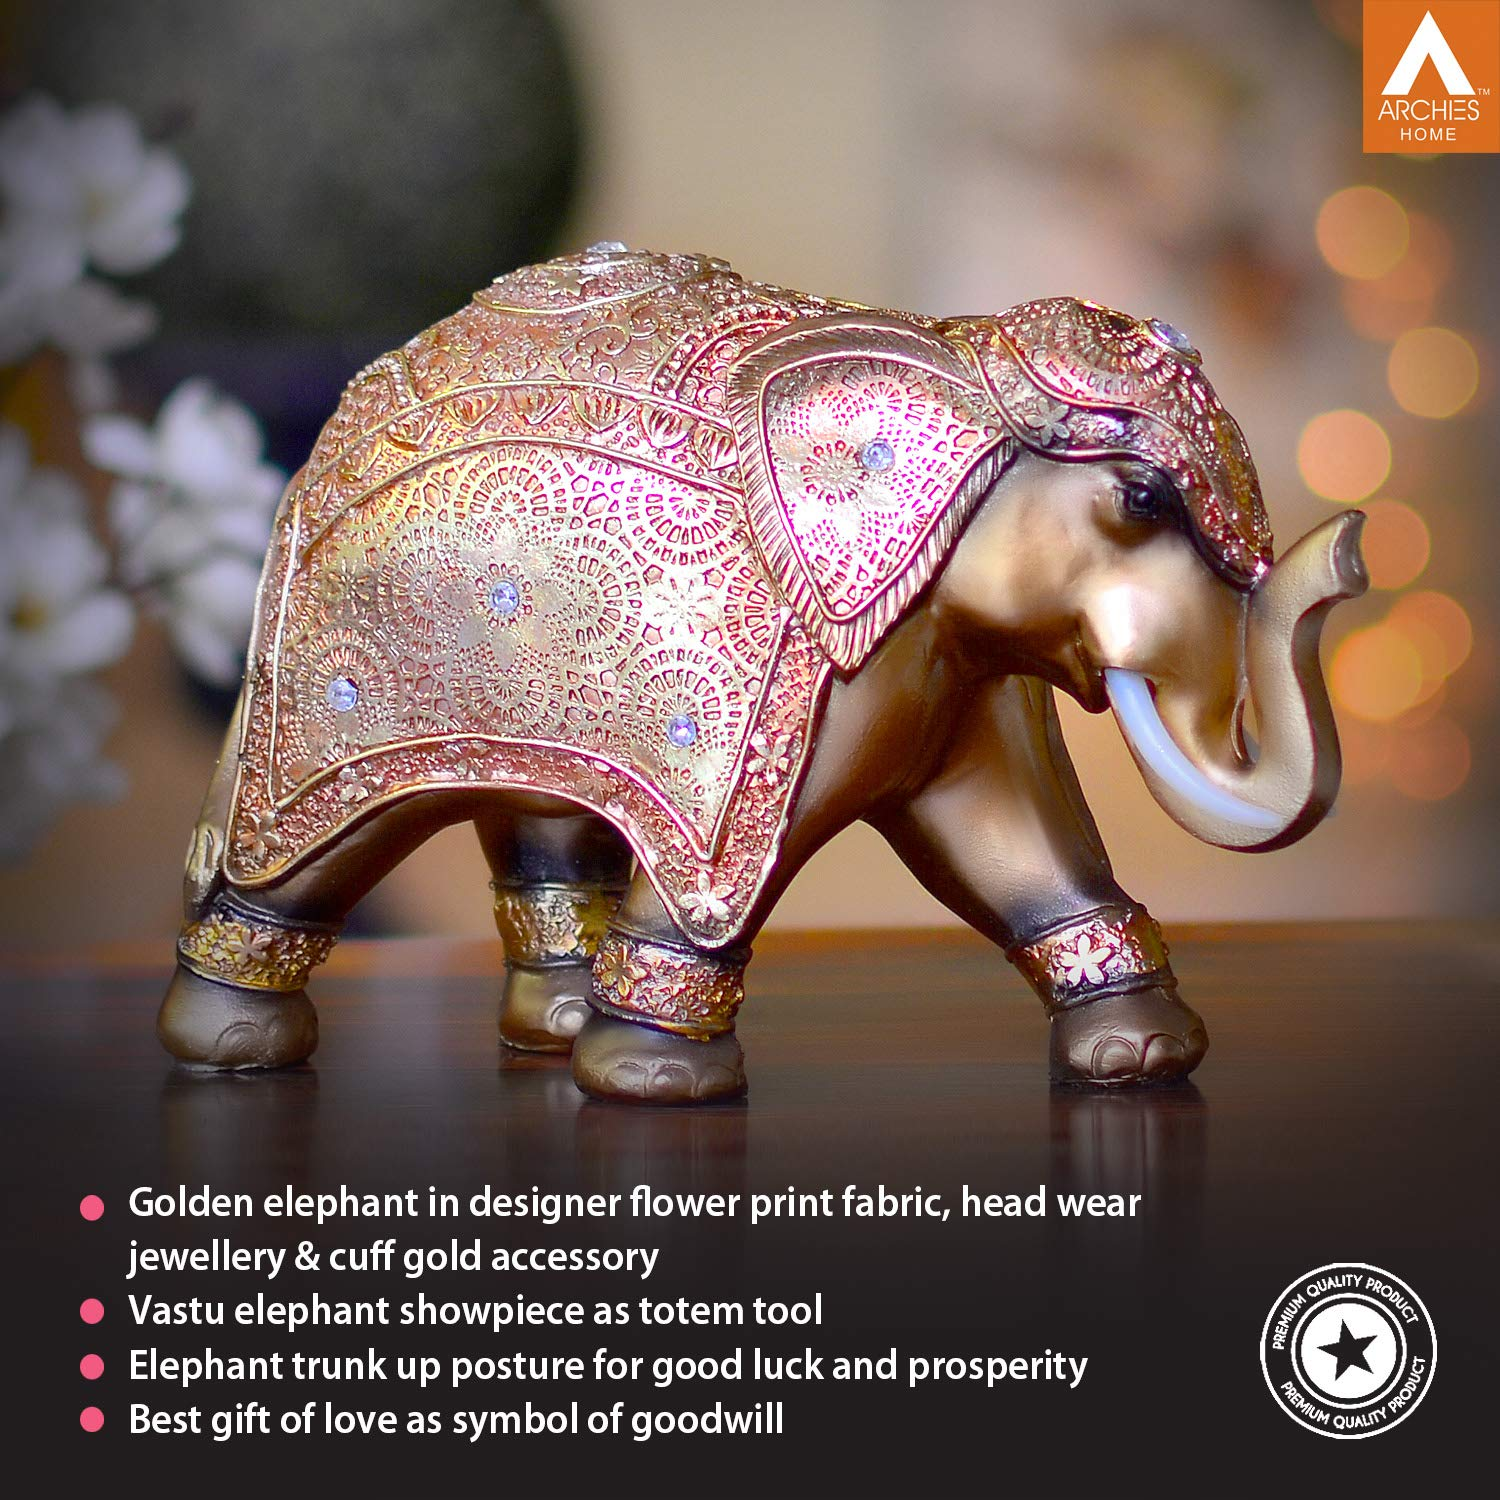 Buy Archies Golden Elephant Showpiece Finest Quality Traditional